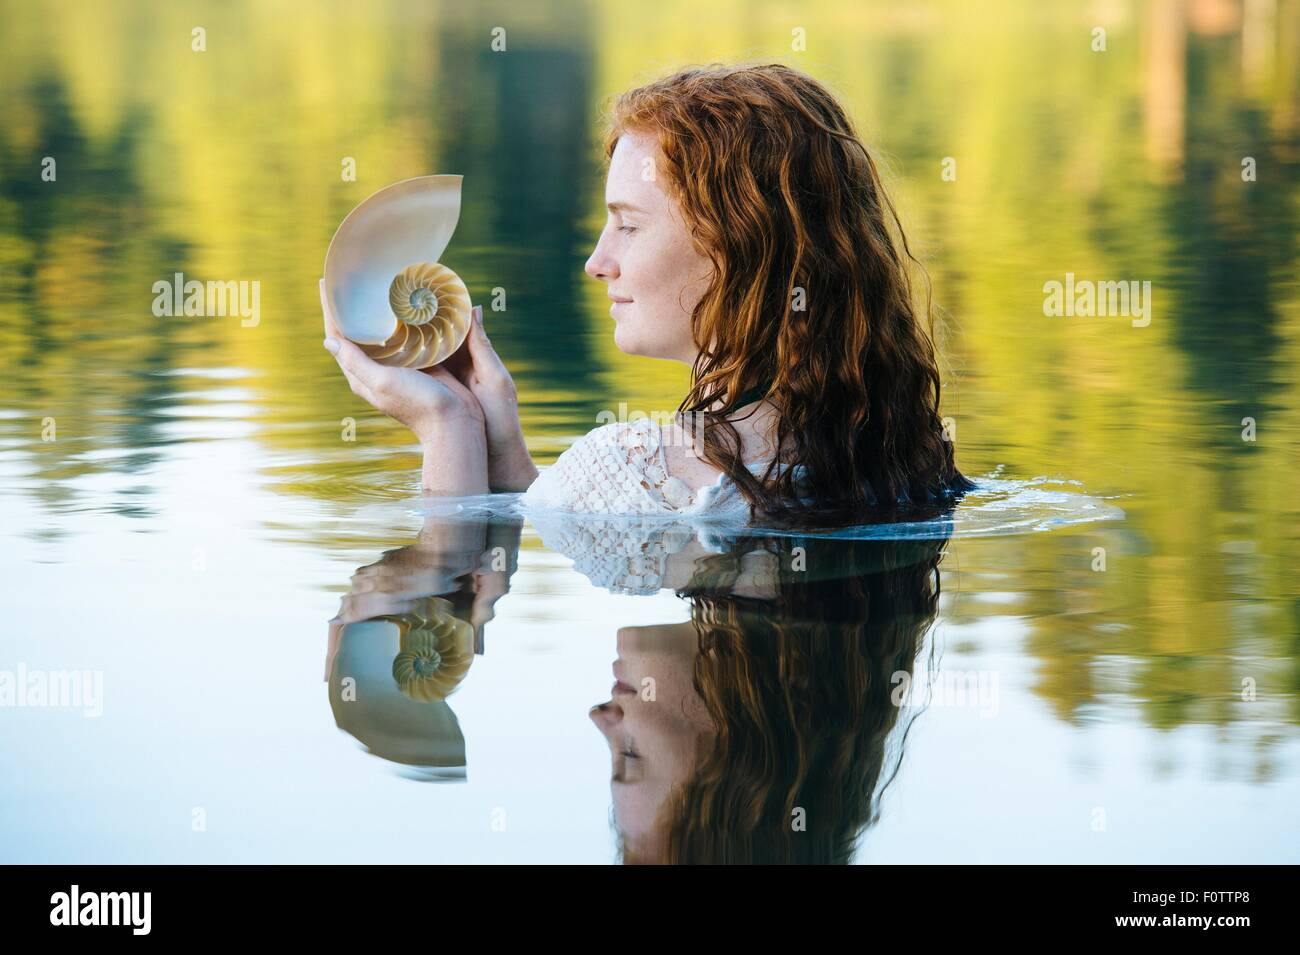 Head and shoulders of young woman with long red hair in lake gazing at seashell - Stock Image